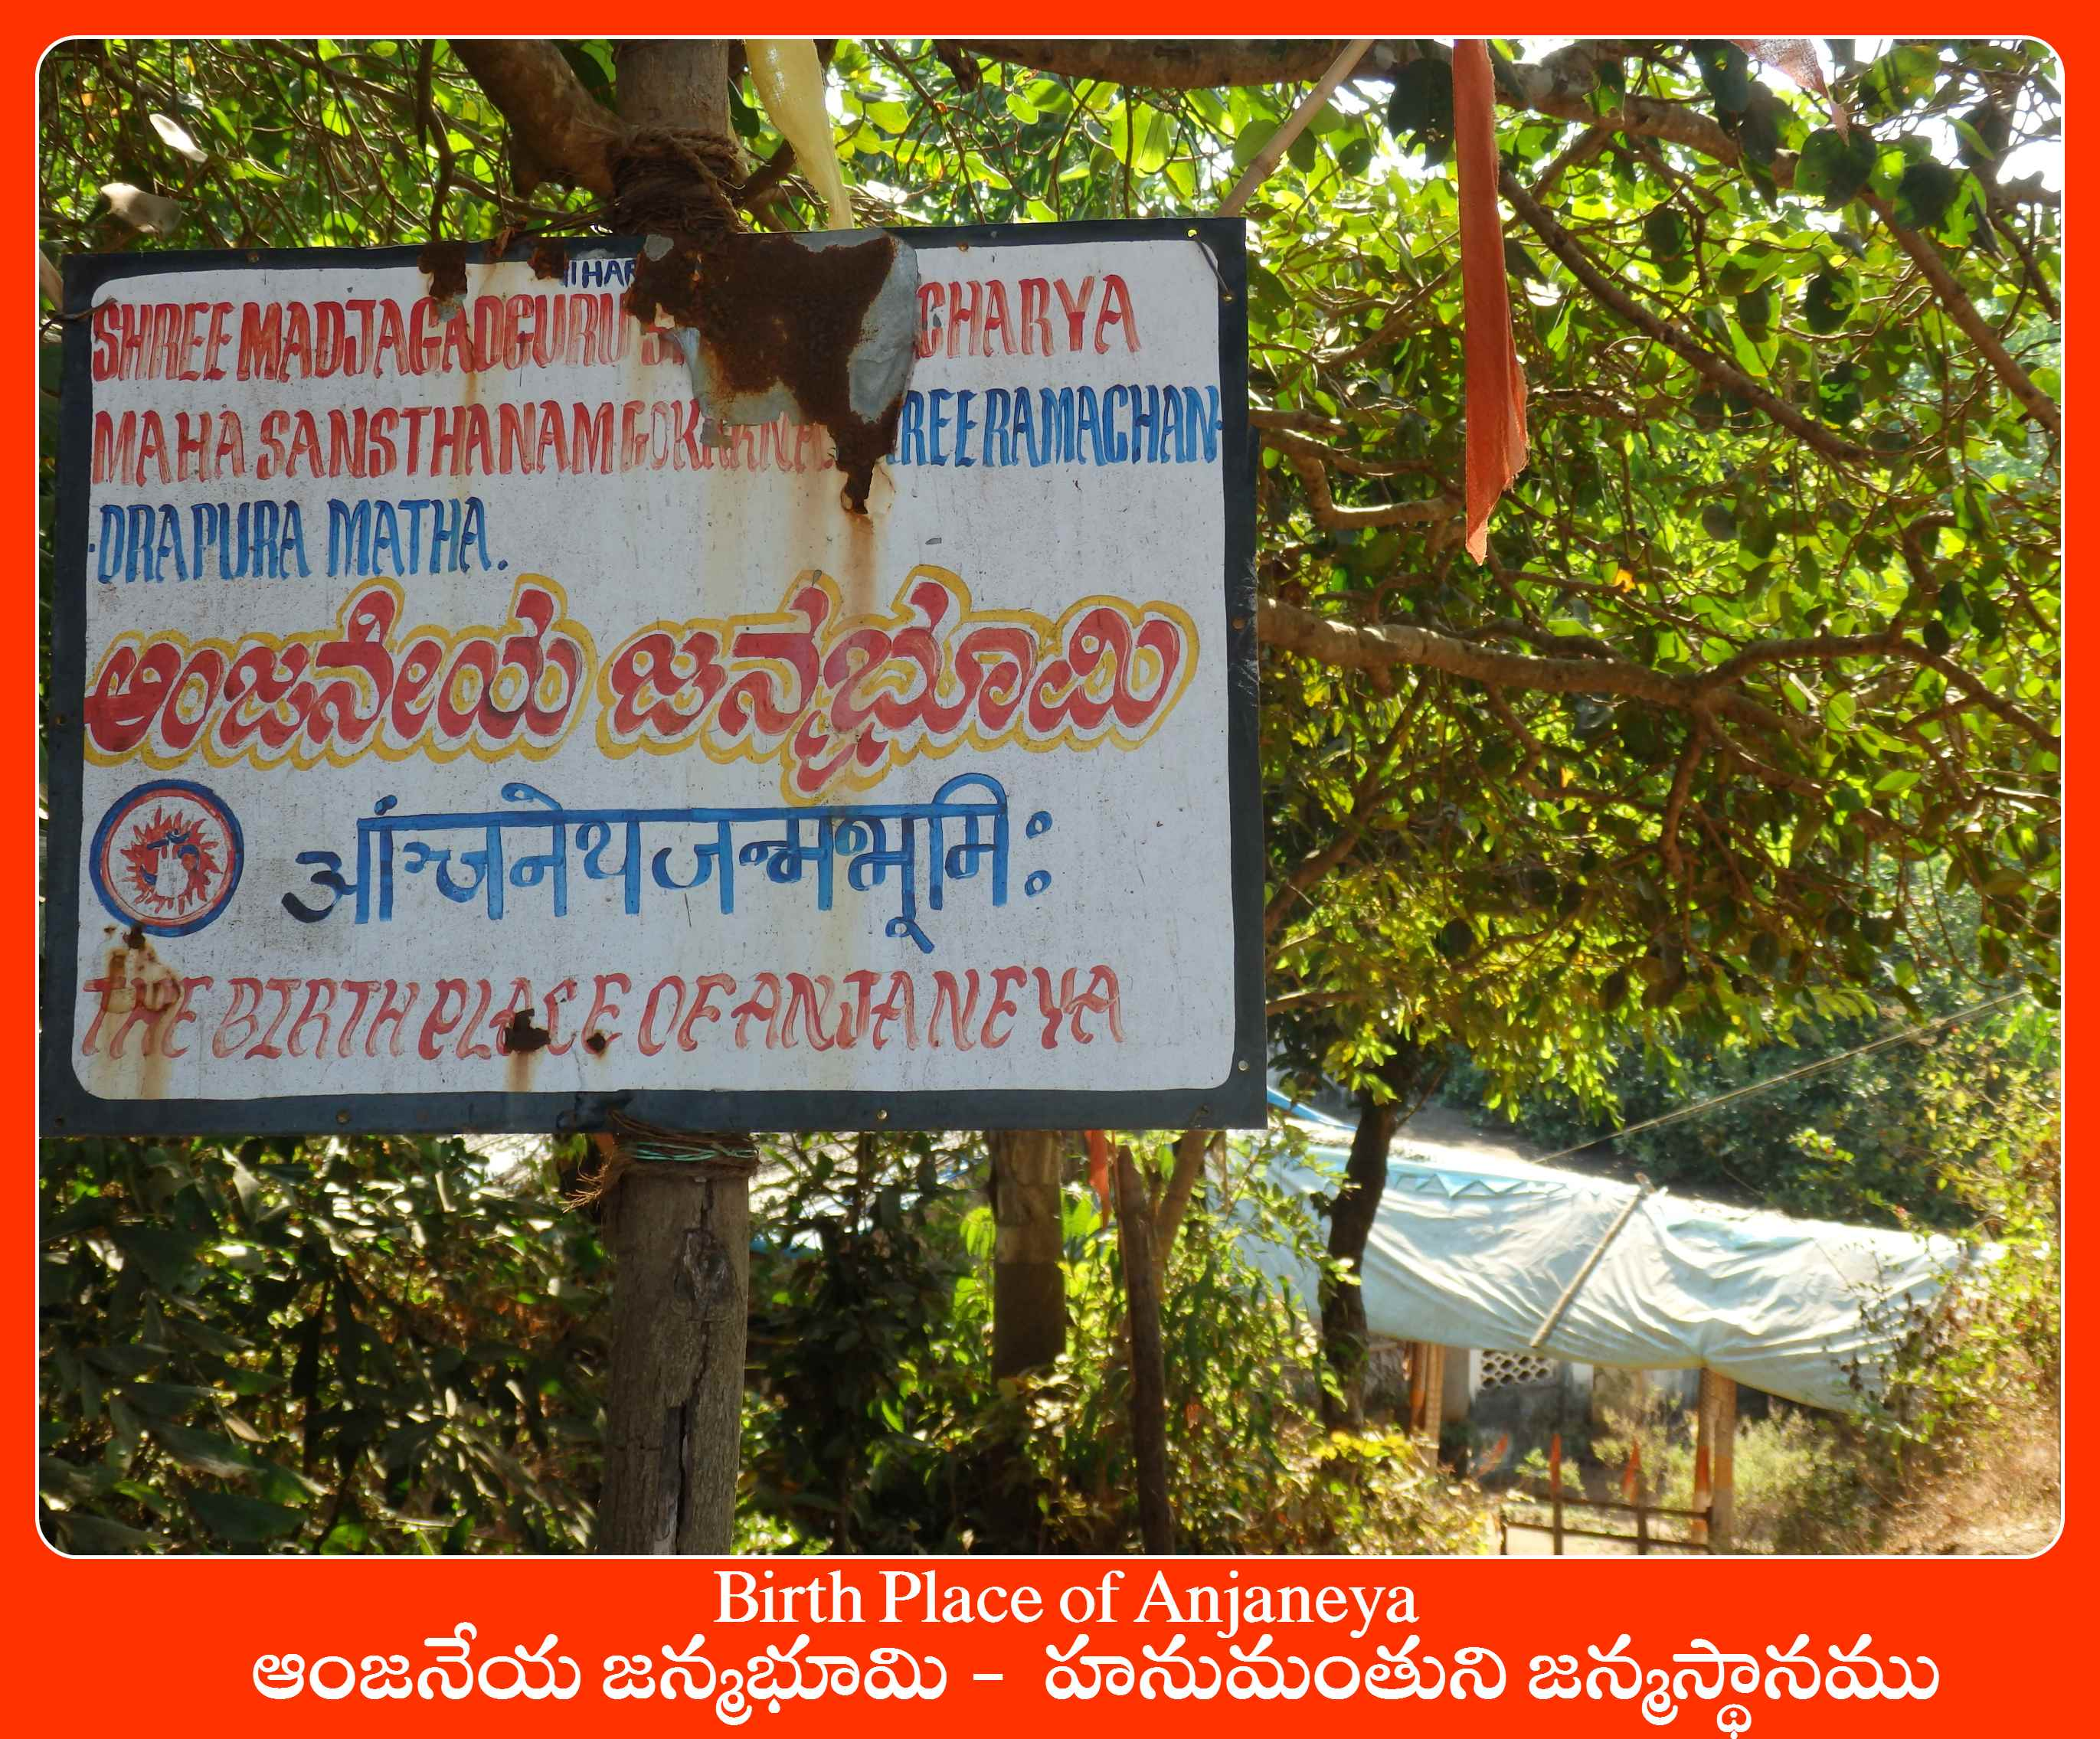 Birth Place of Anjaneya - Gokarna